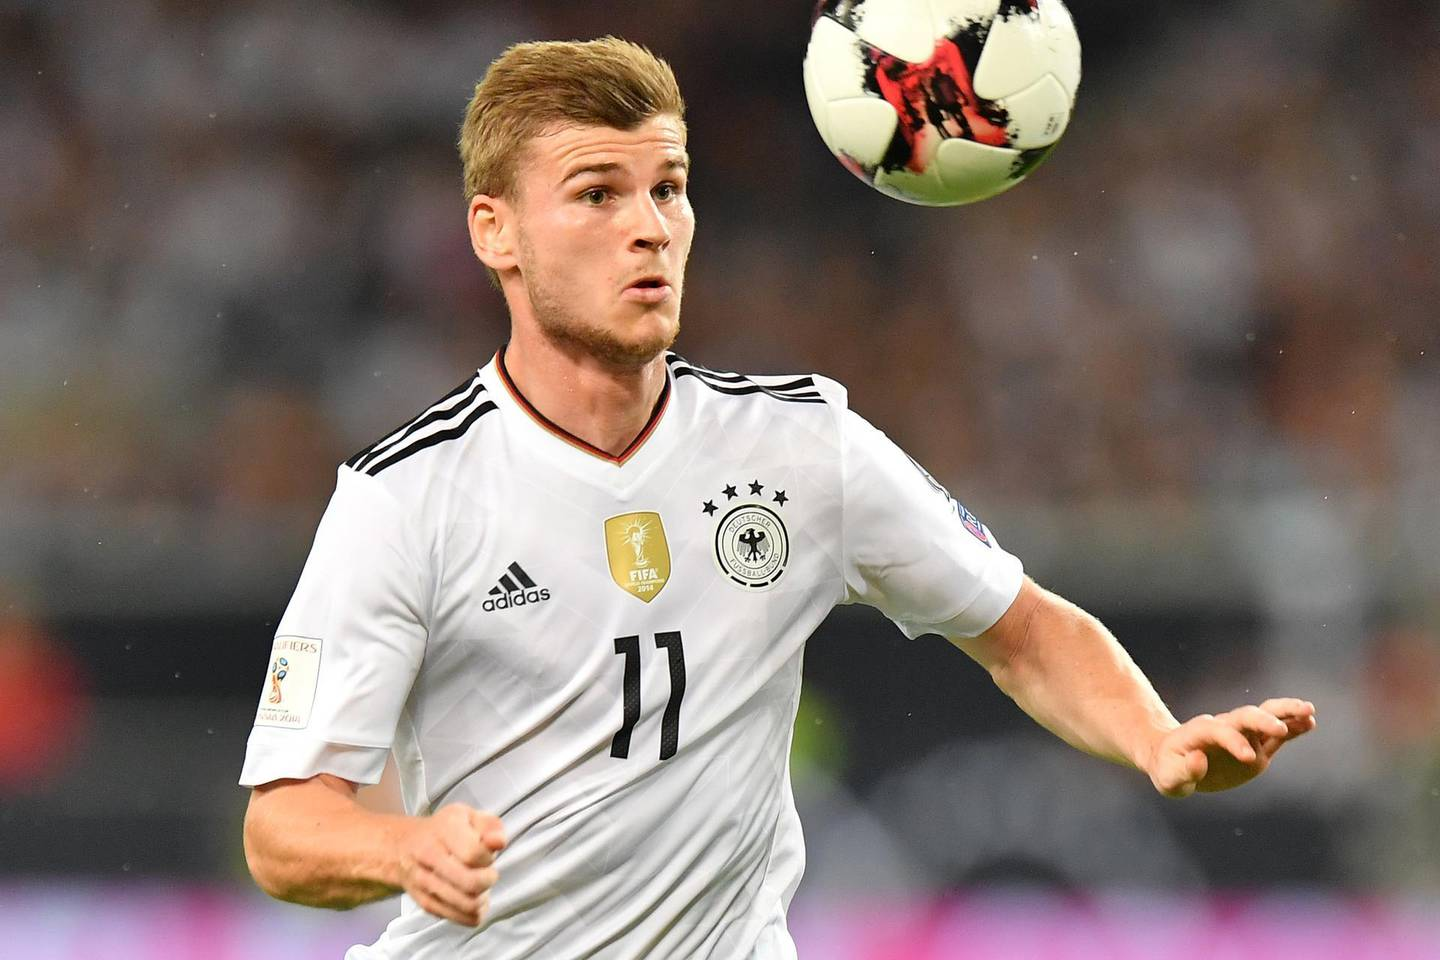 STUTTGART, GERMANY - SEPTEMBER 04: Timo Werner of Germany during the FIFA 2018 World Cup Qualifier between Germany and Norway at Mercedes-Benz Arena on September 4, 2017 in Stuttgart, Baden-Wuerttemberg. (Photo by Sebastian Widmann/Bongarts/Getty Images)